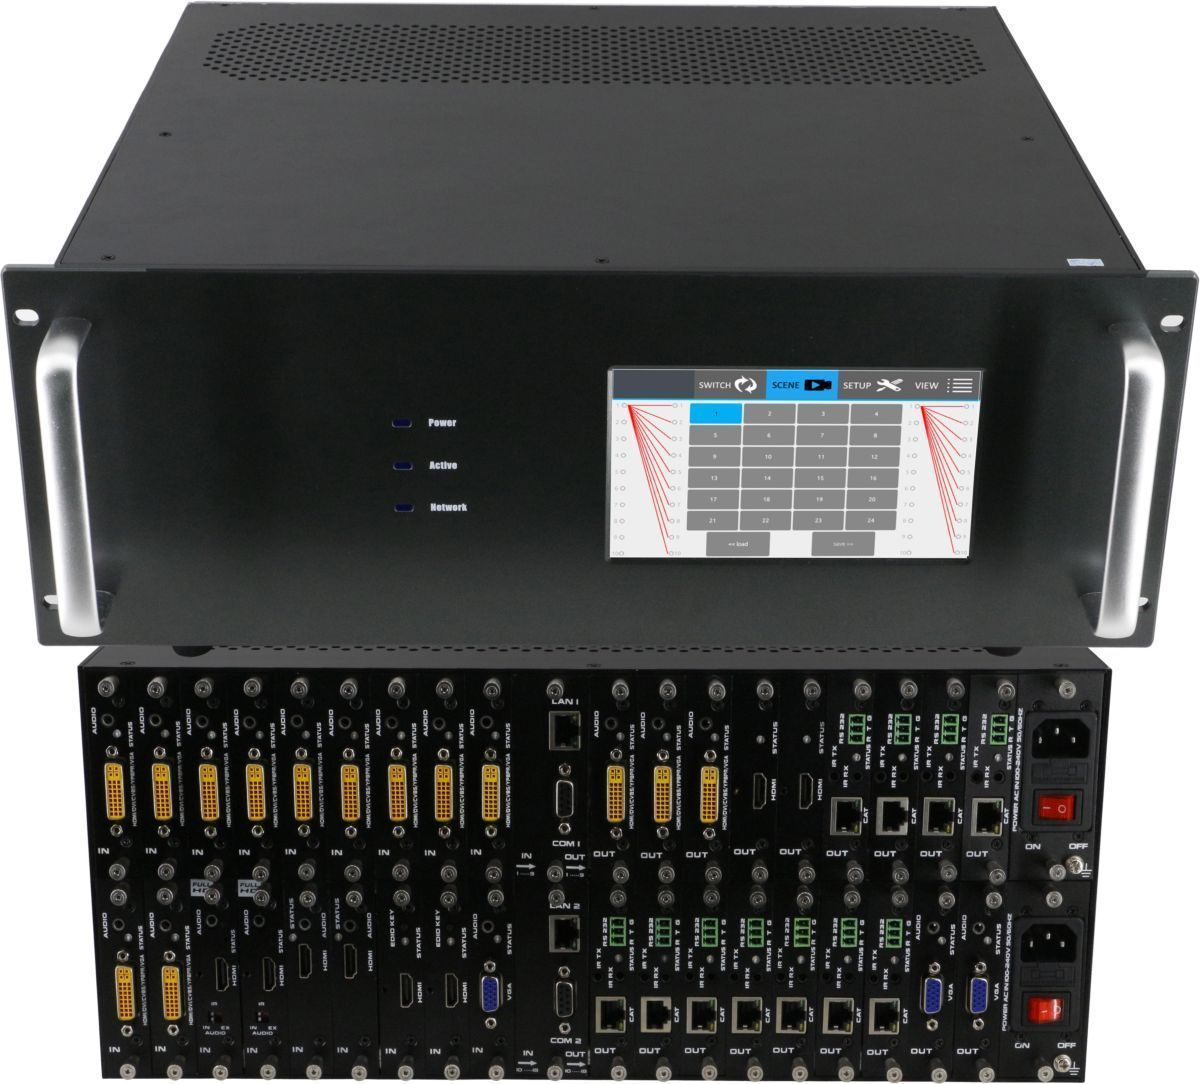 4K 13x13 HDMI Matrix Switcher with Color Touchscreen